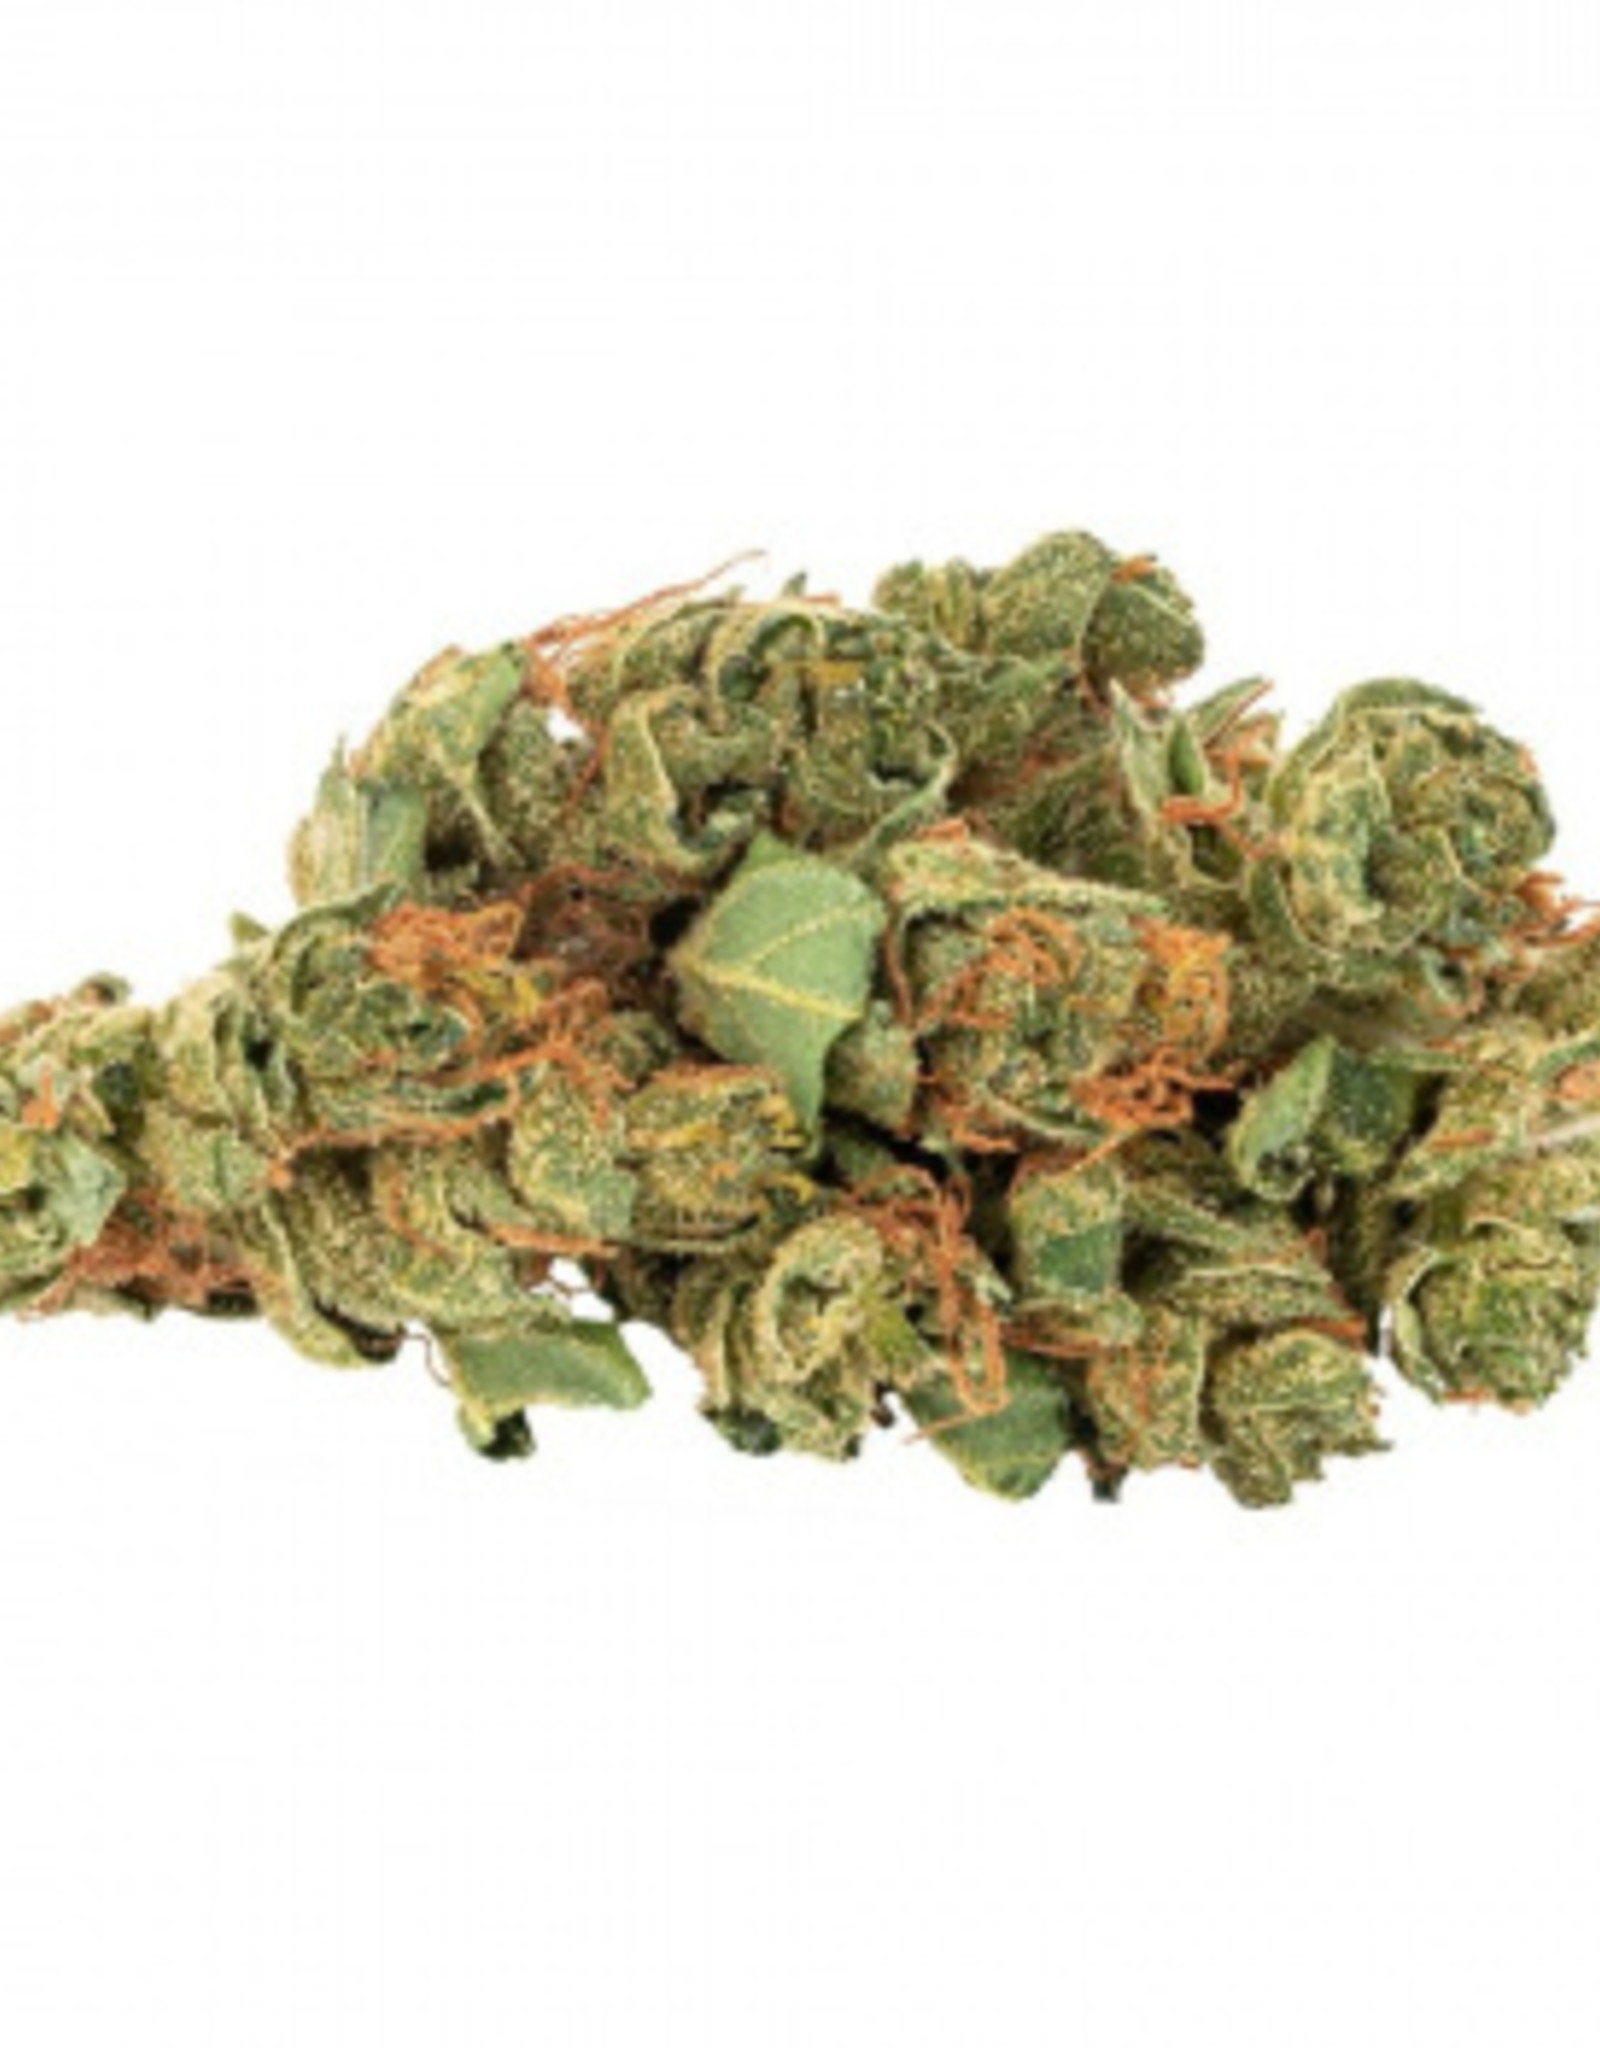 Daily Special Daily Special - Sativa 3.5G